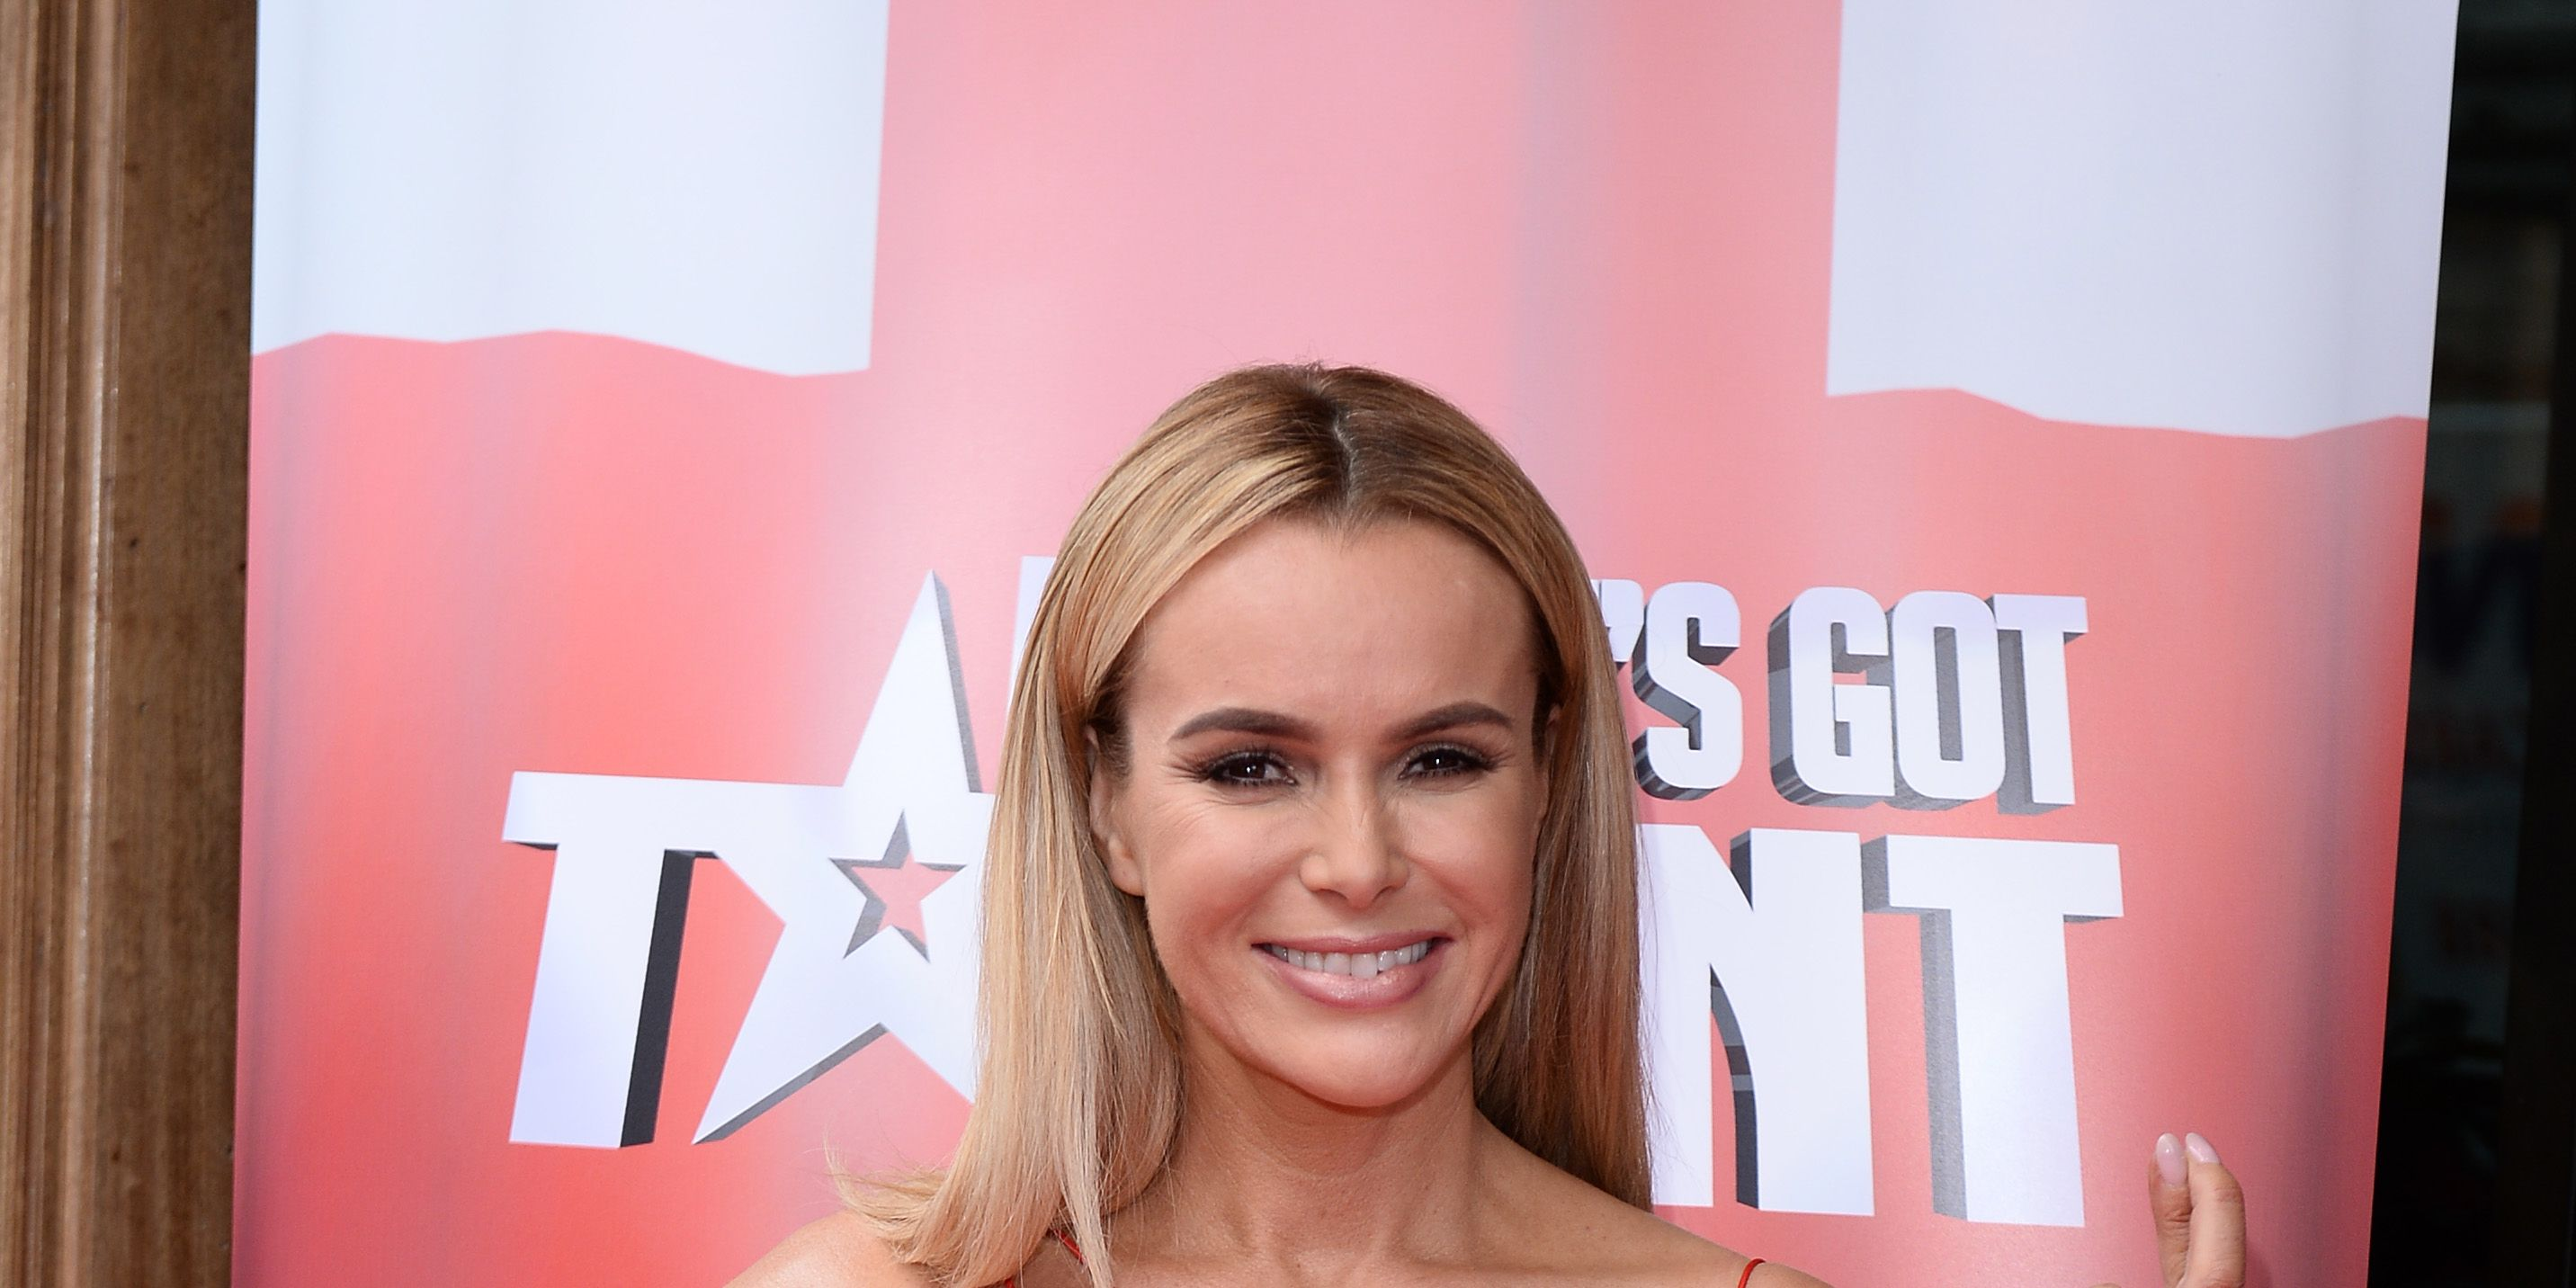 Amanda Holden arrives for the launch of Britain's Got Talent